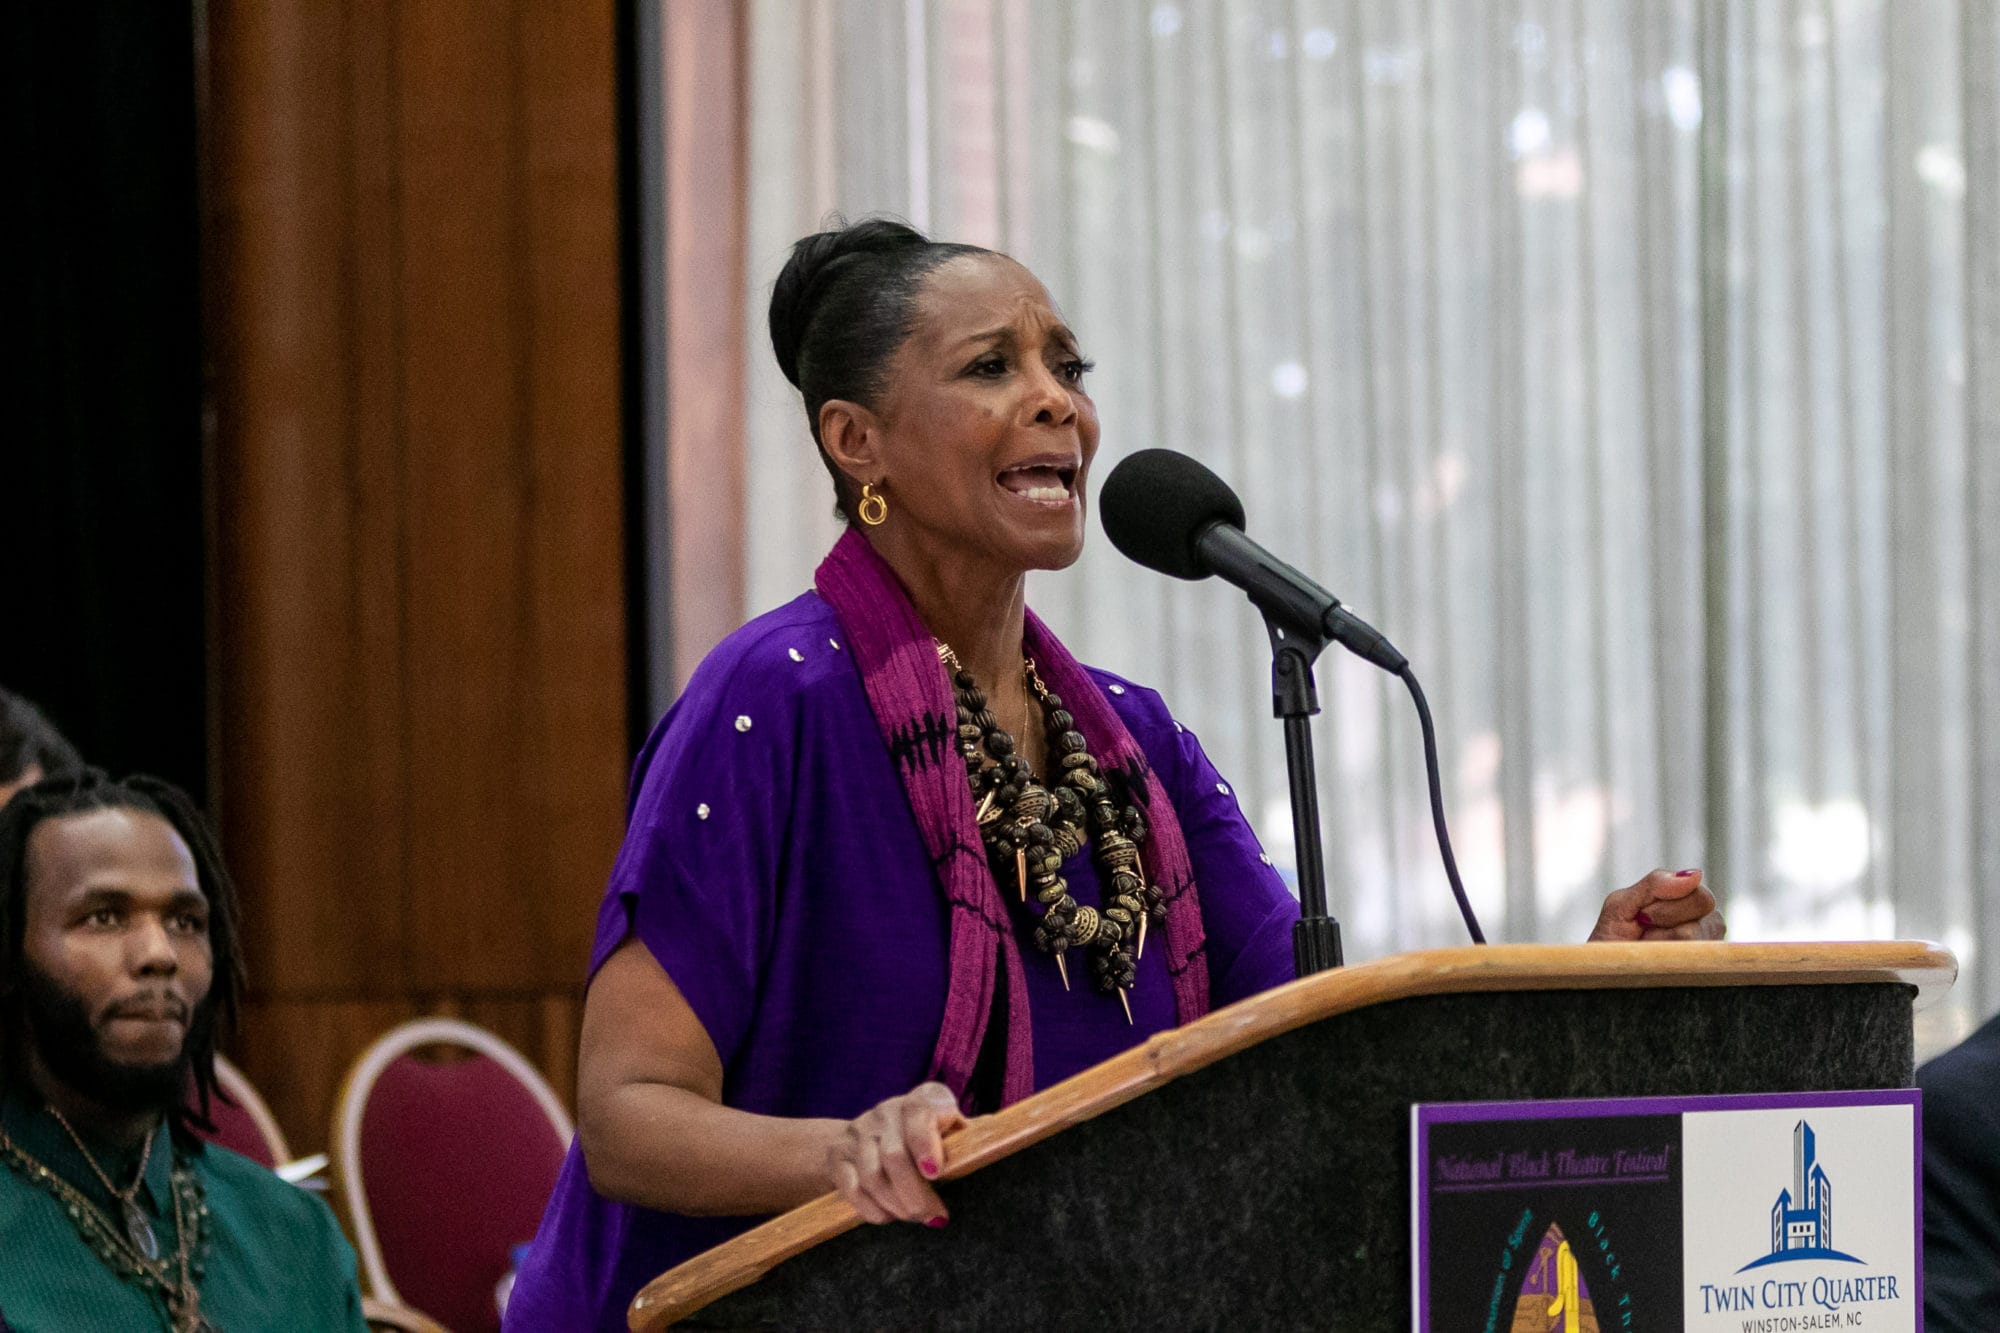 2019 National Black Theatre Festival Co-Chair Margaret Avery. Photo courtesy of the National Black Theatre Festival.